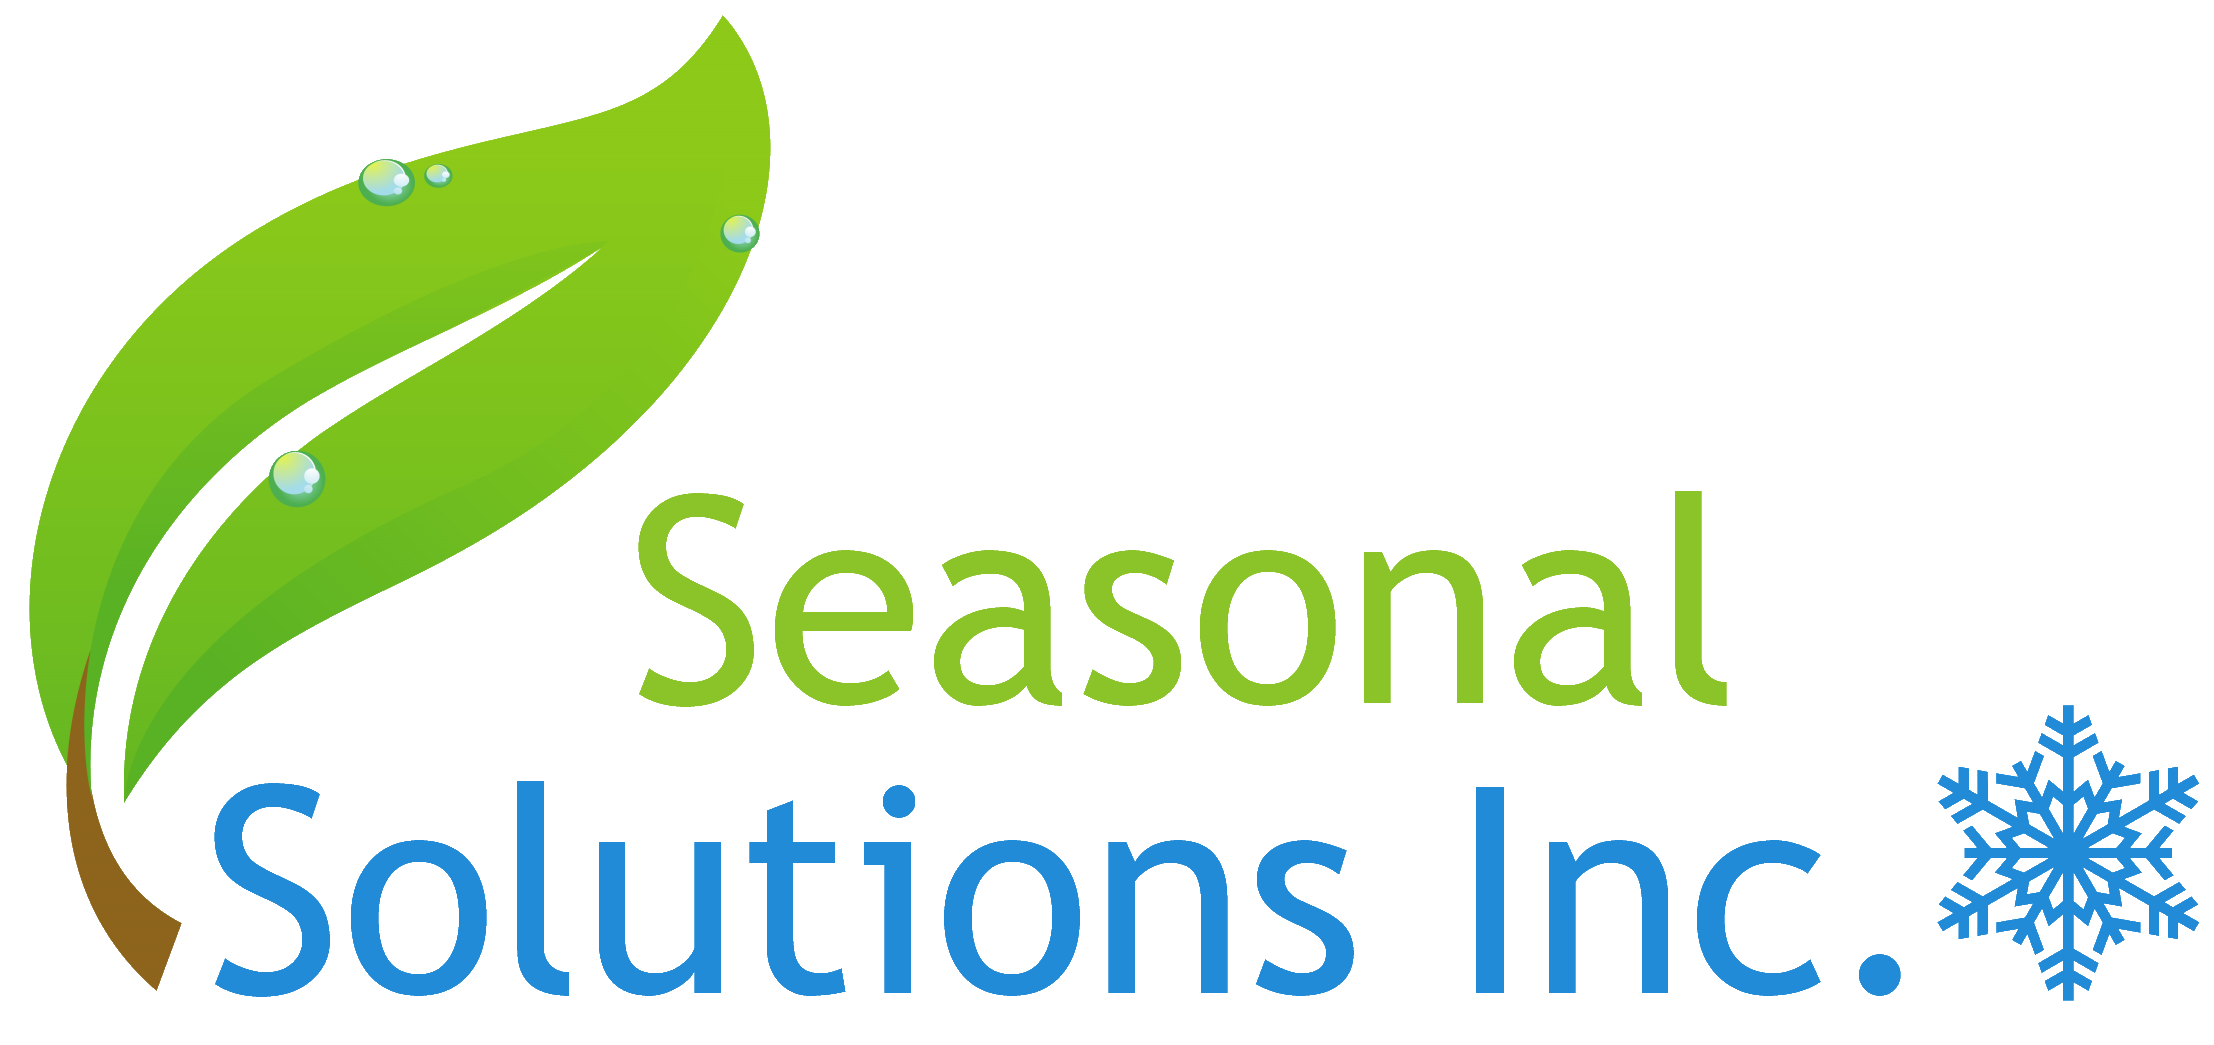 Seasonal Solutions